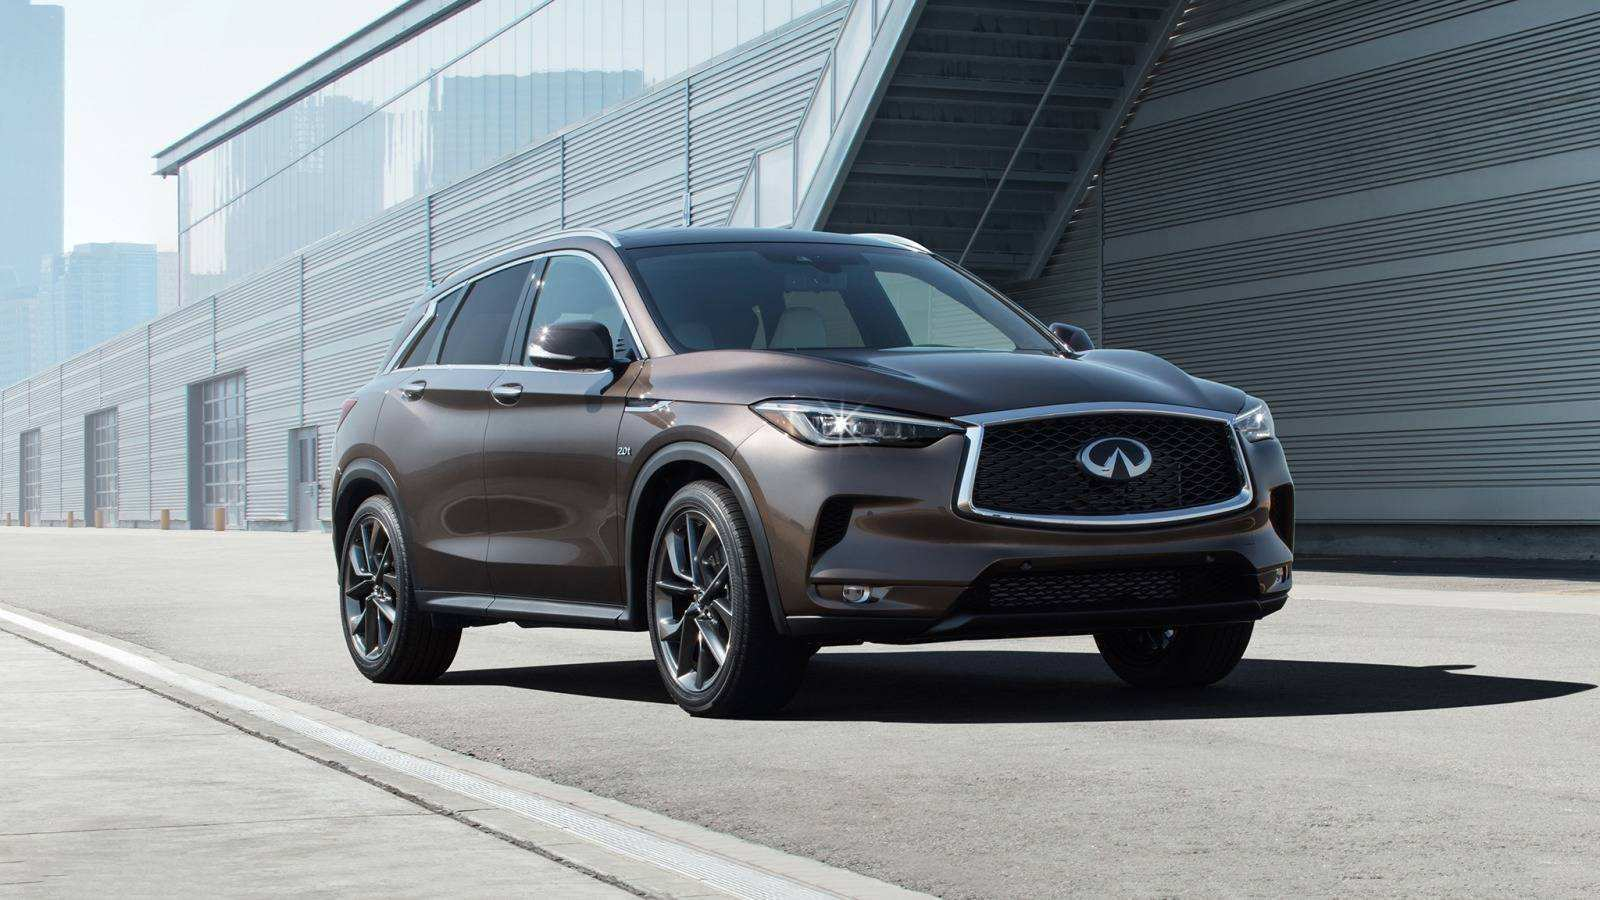 14 All New New 2019 Infiniti Qx50 Wheels Price Research New by New 2019 Infiniti Qx50 Wheels Price